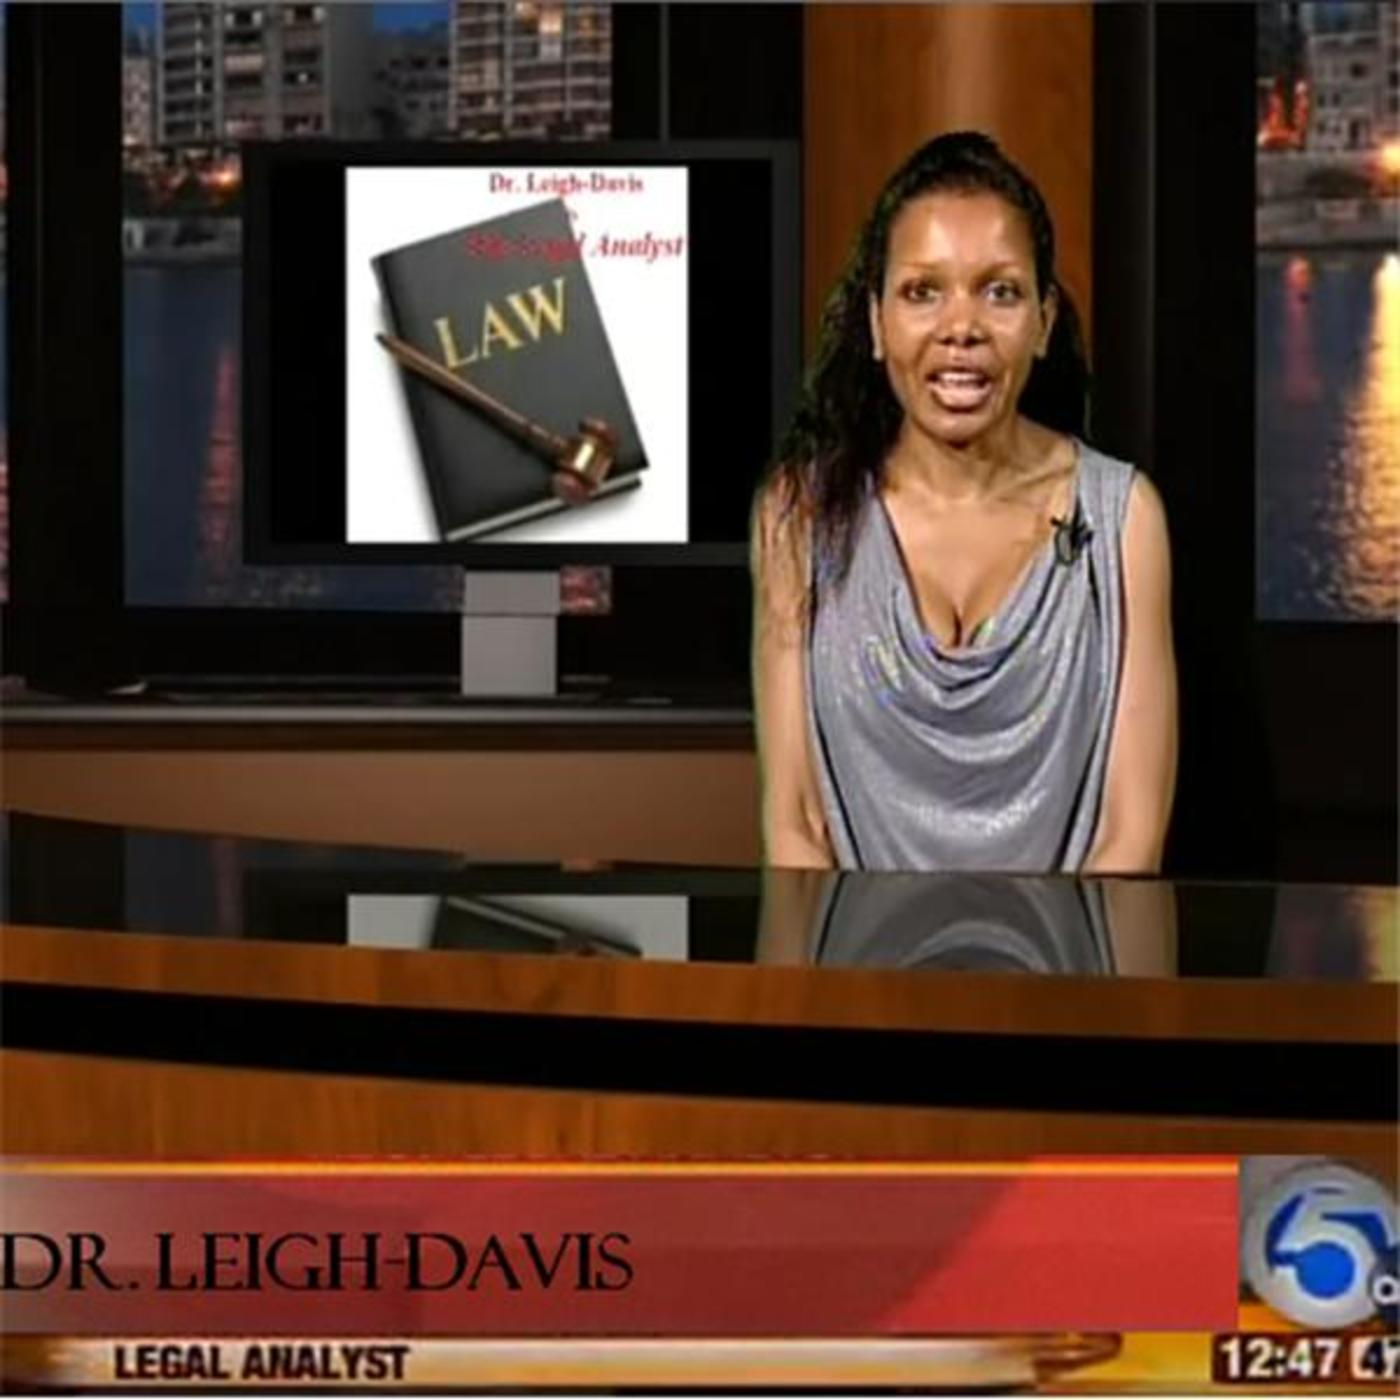 The Legal Analyst is Dr. Leigh-Davis